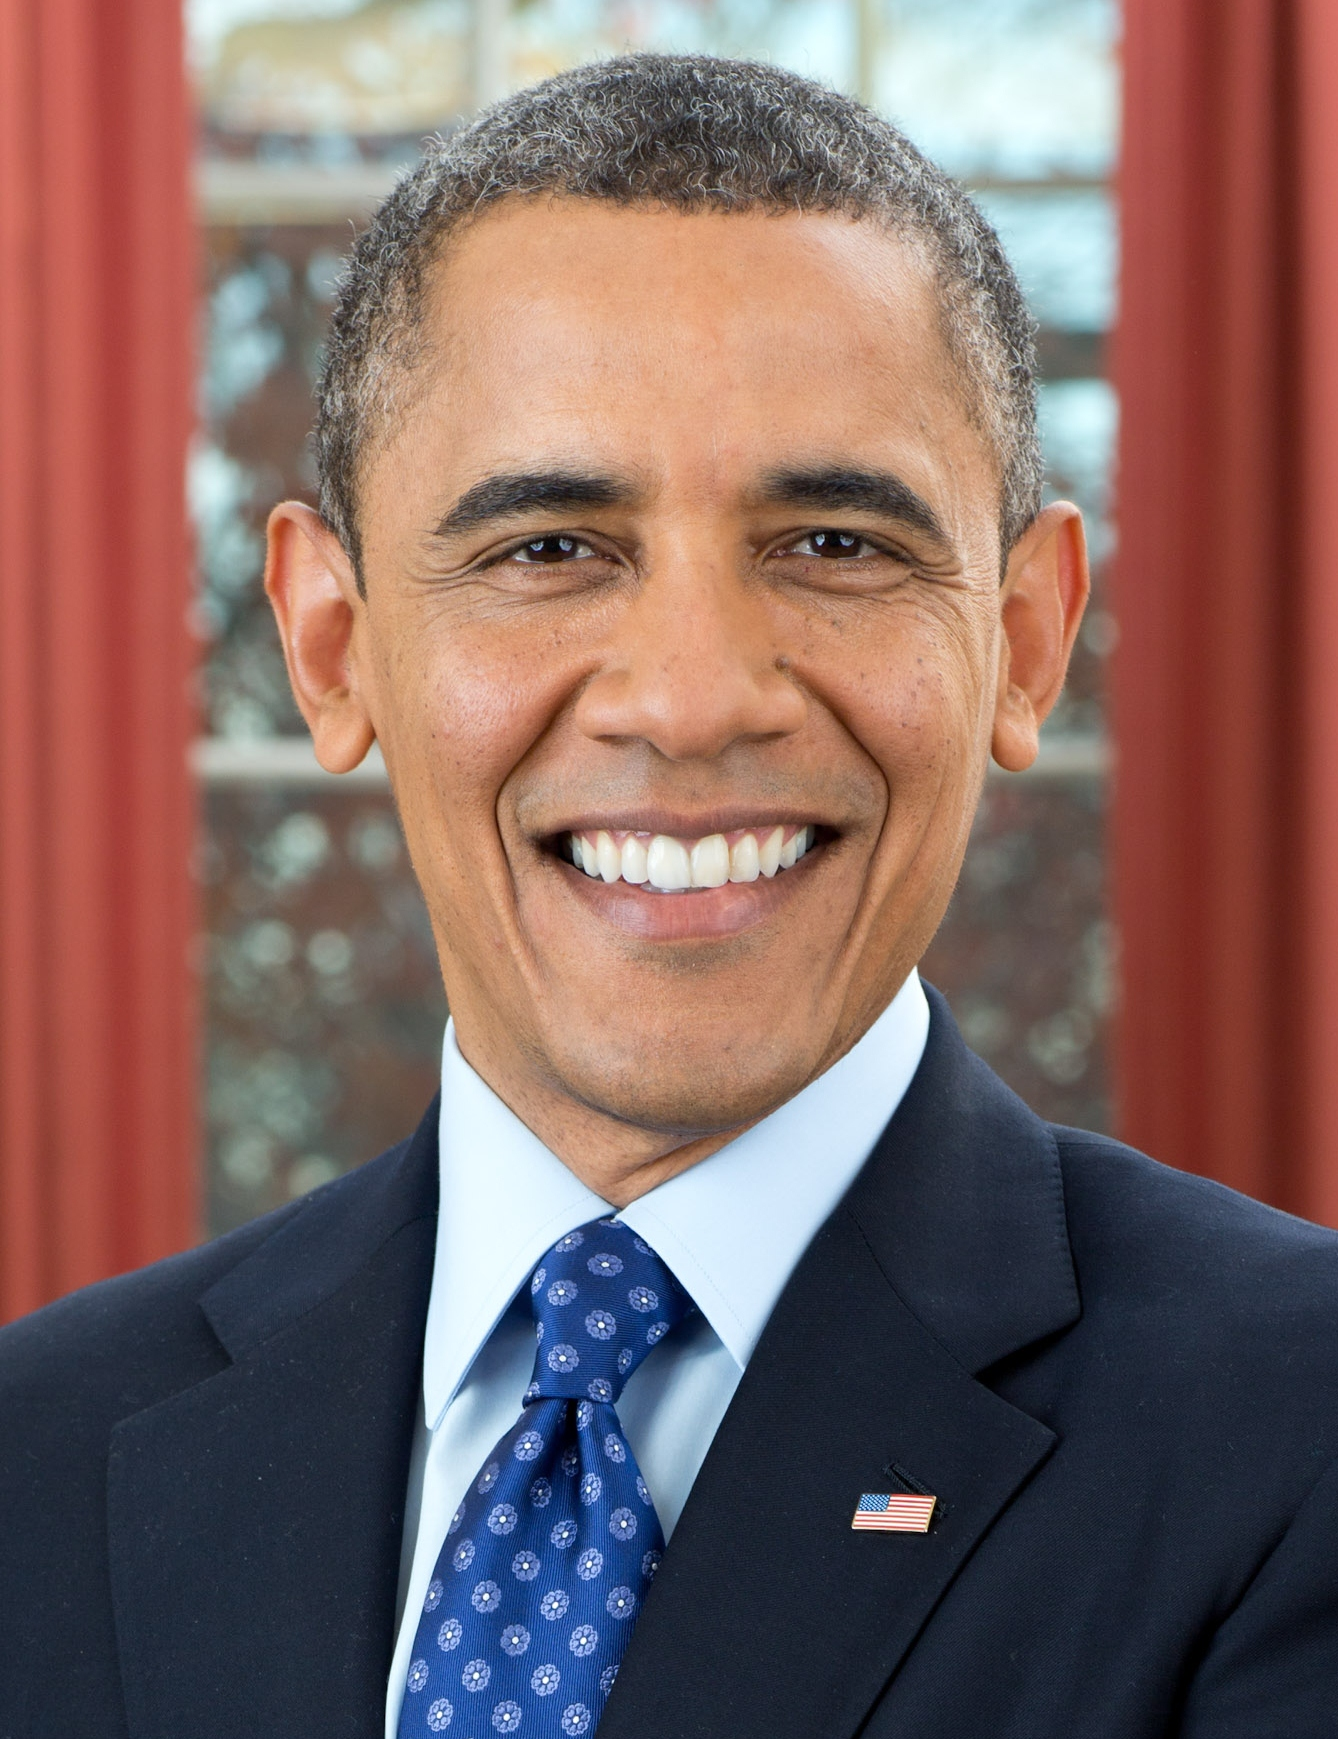 FilePresident Barack Obama 2012 portrait cropjpg Wikimedia